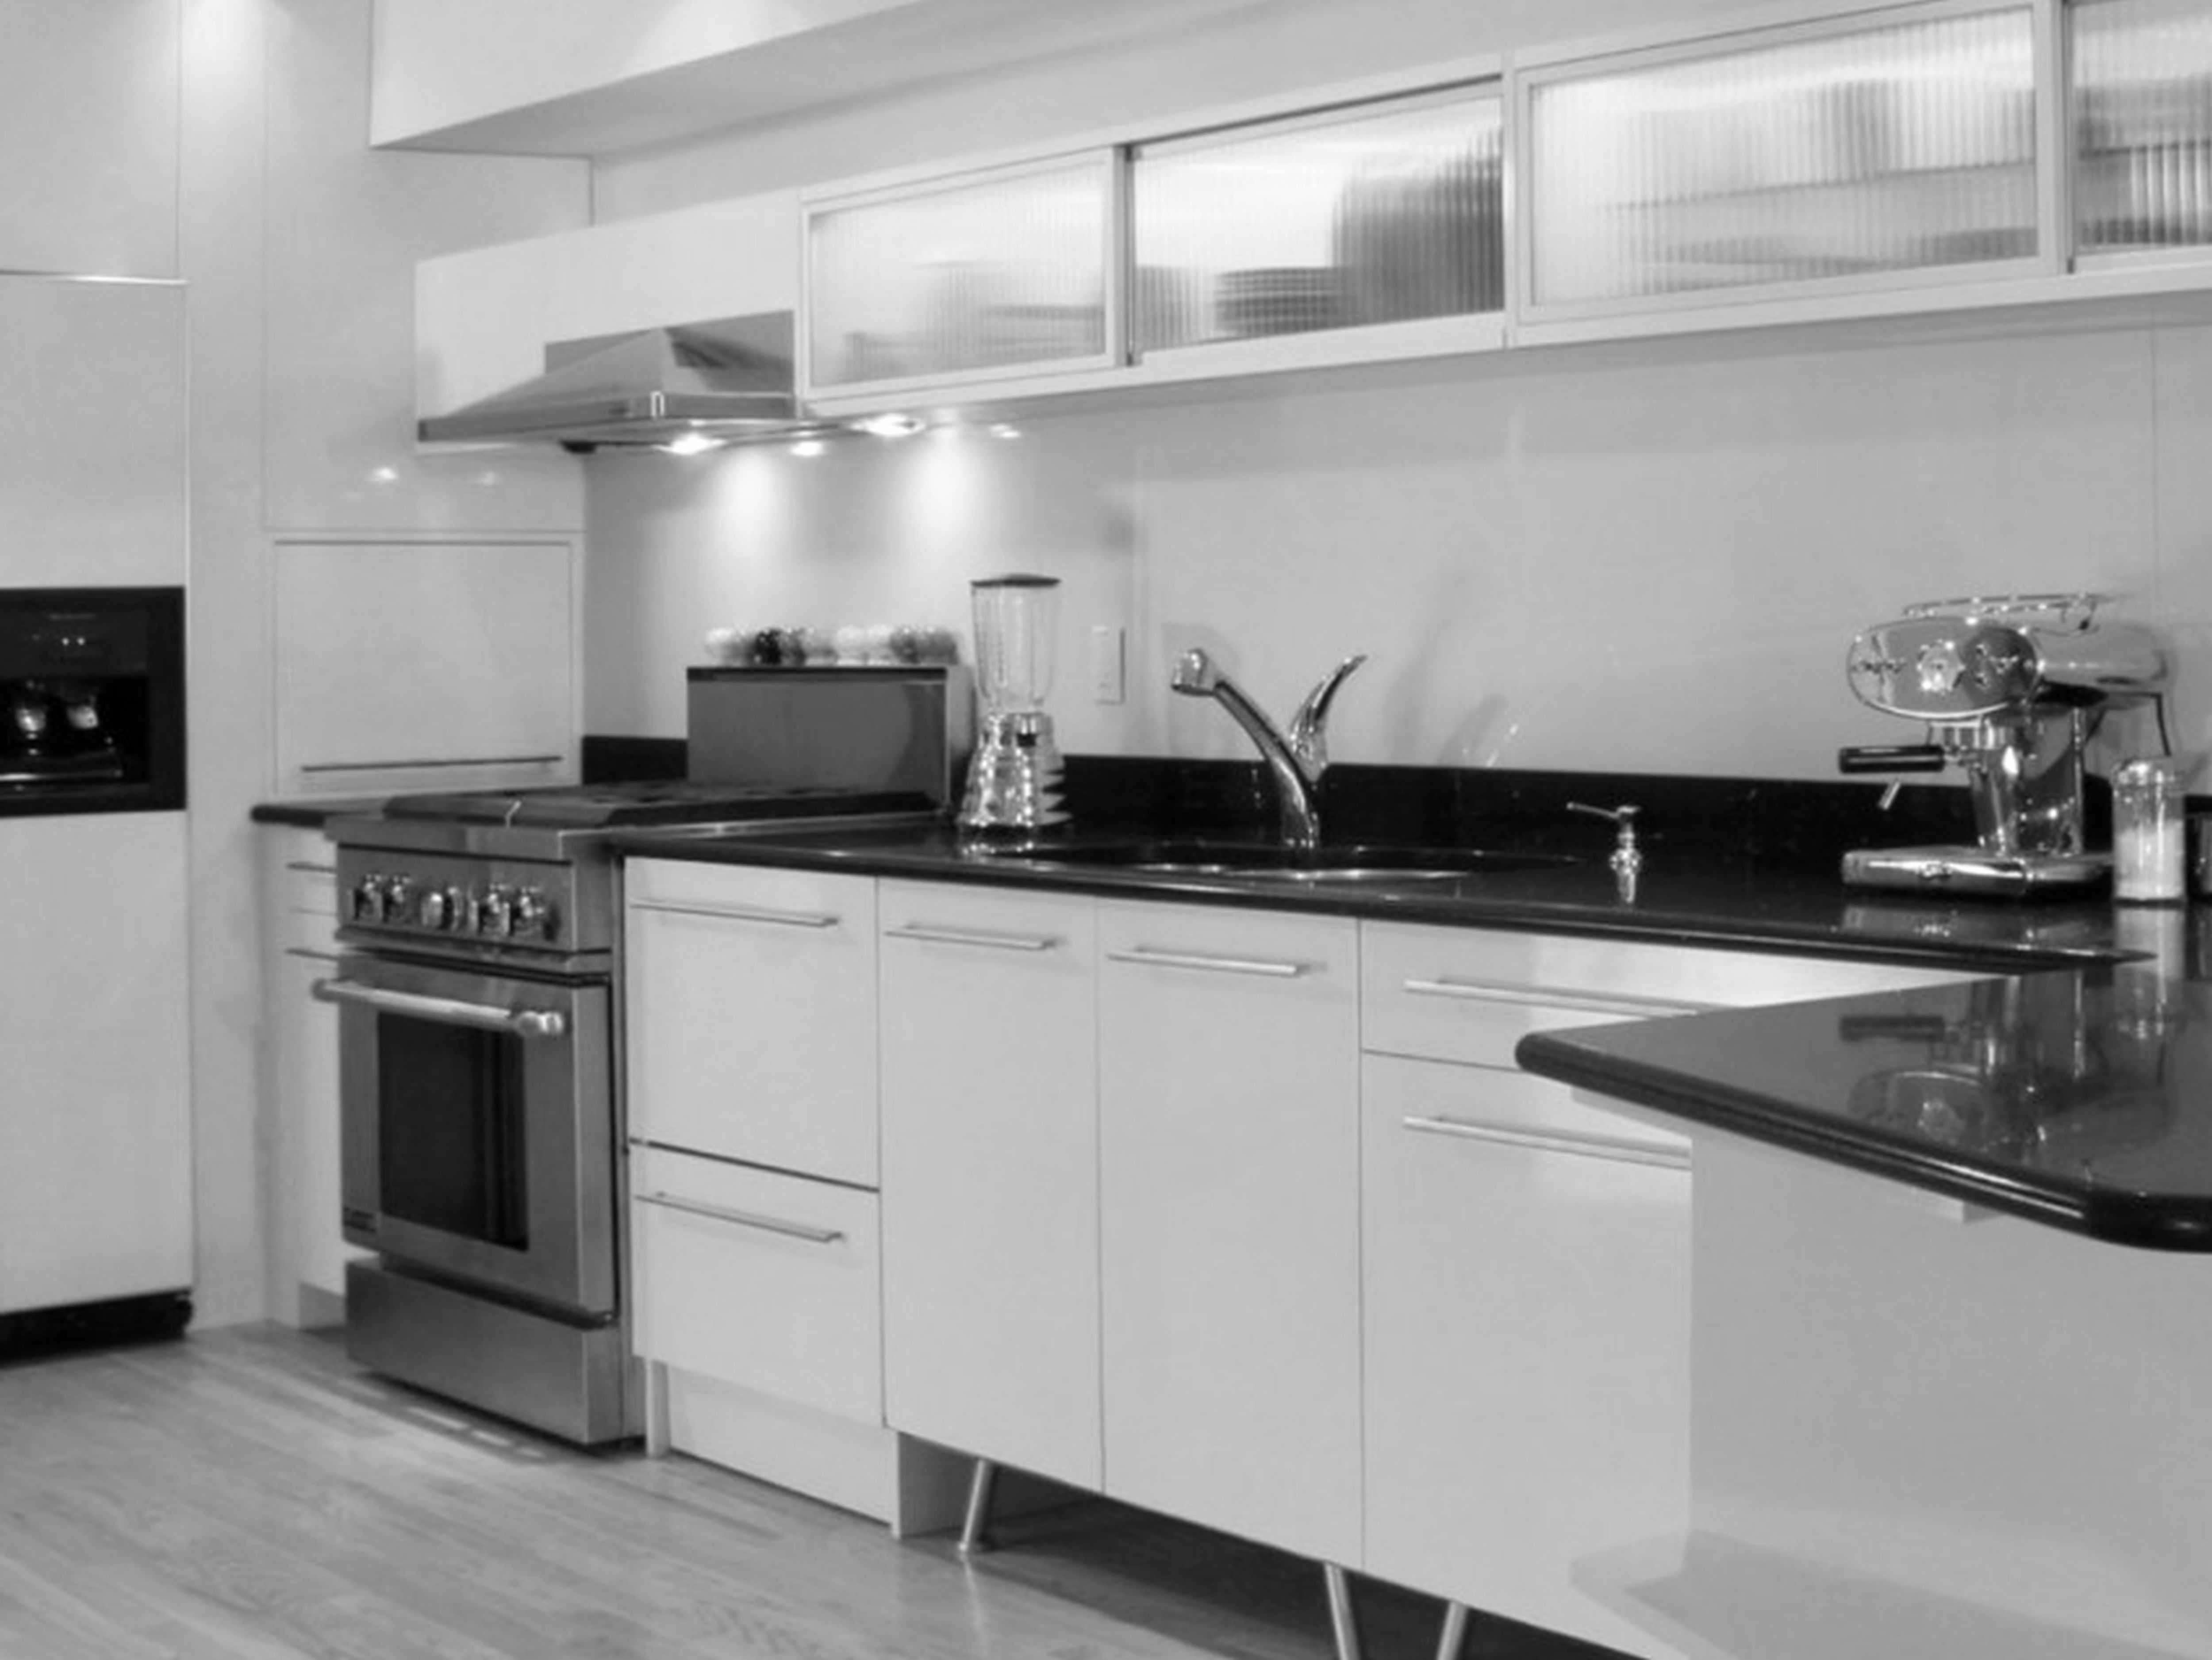 Red Gloss Kitchen Cabinets Awesome Uncategorized Black Shiny Kitchen Cabinets For White Modern Kitchen Kitchen Design Countertops Modern White Kitchen Cabinets